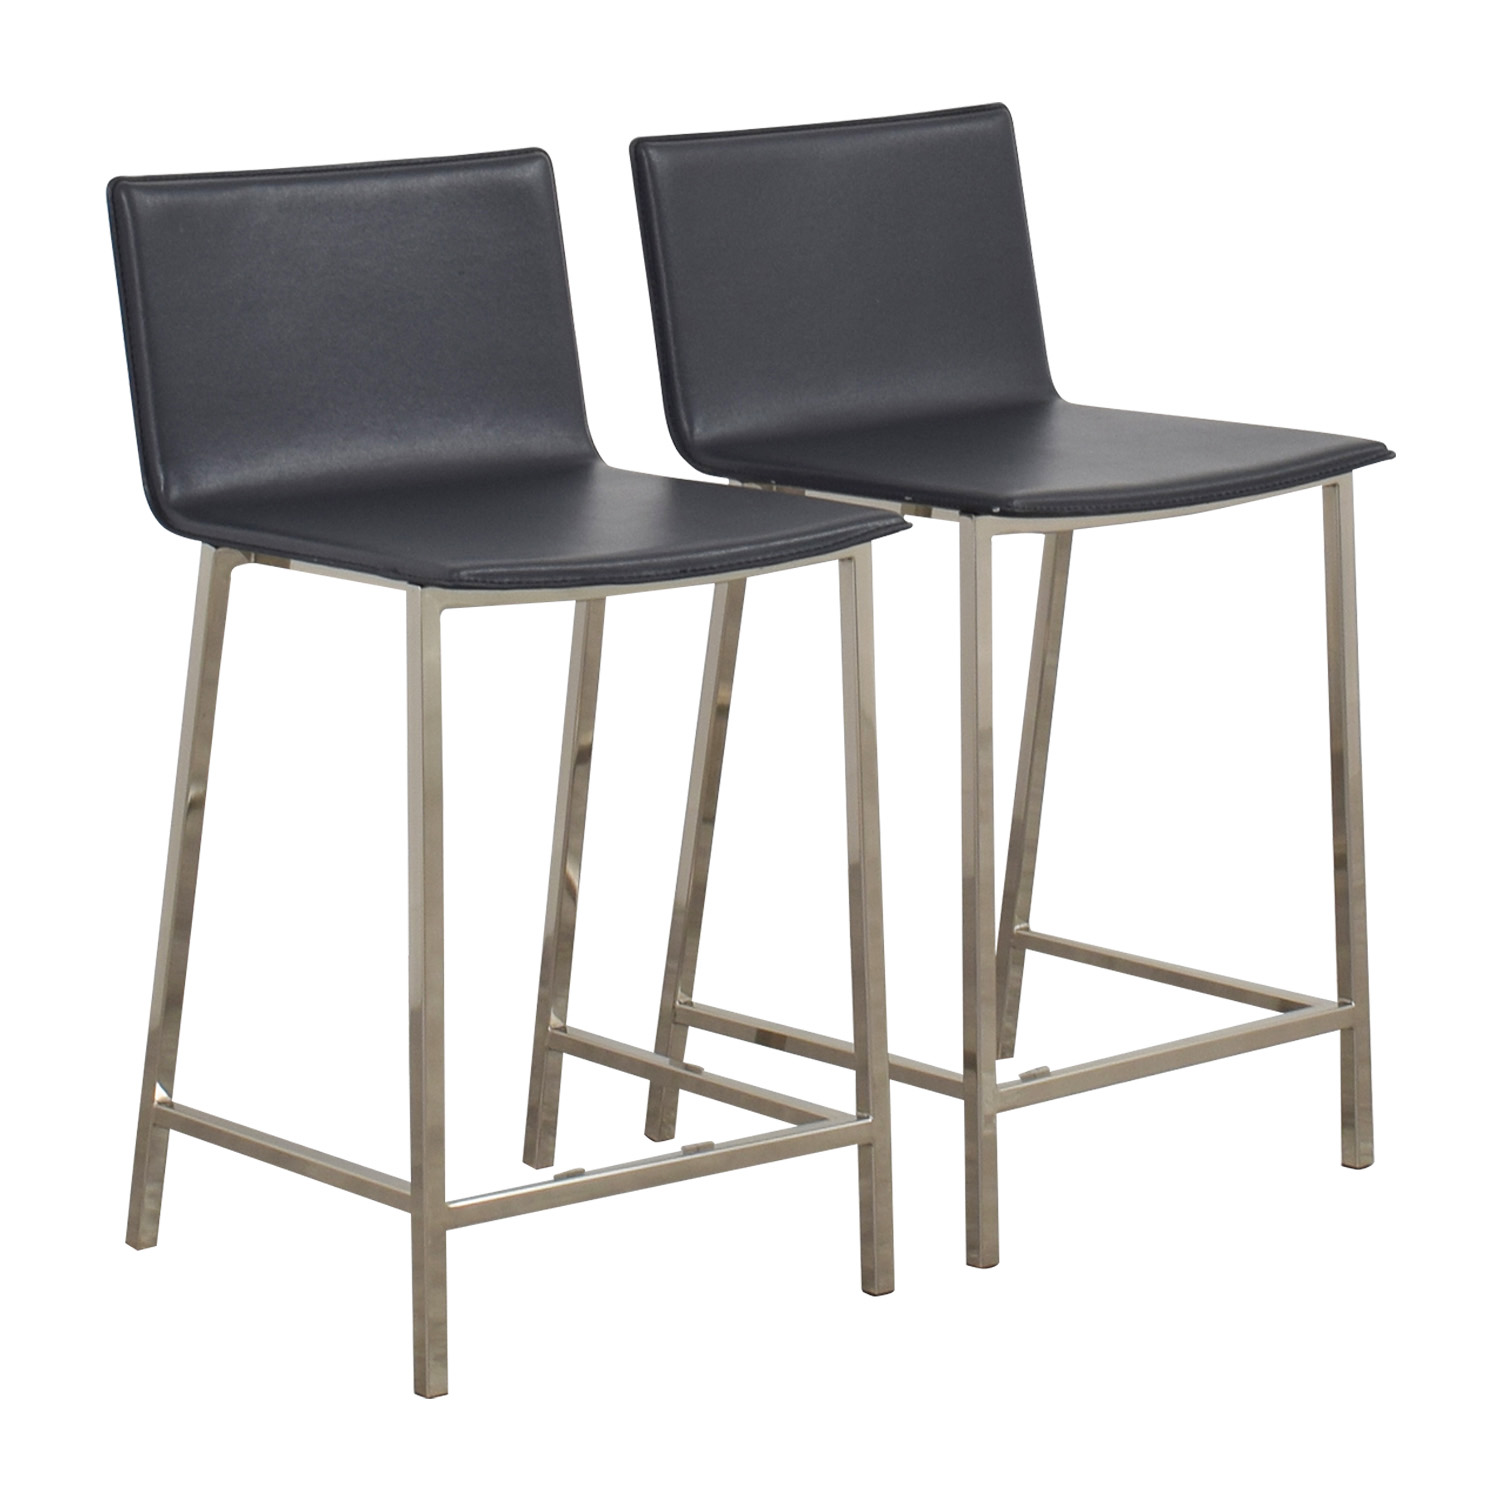 44 OFF  CB2 CB2 Grey Leather Bar Stools  Chairs